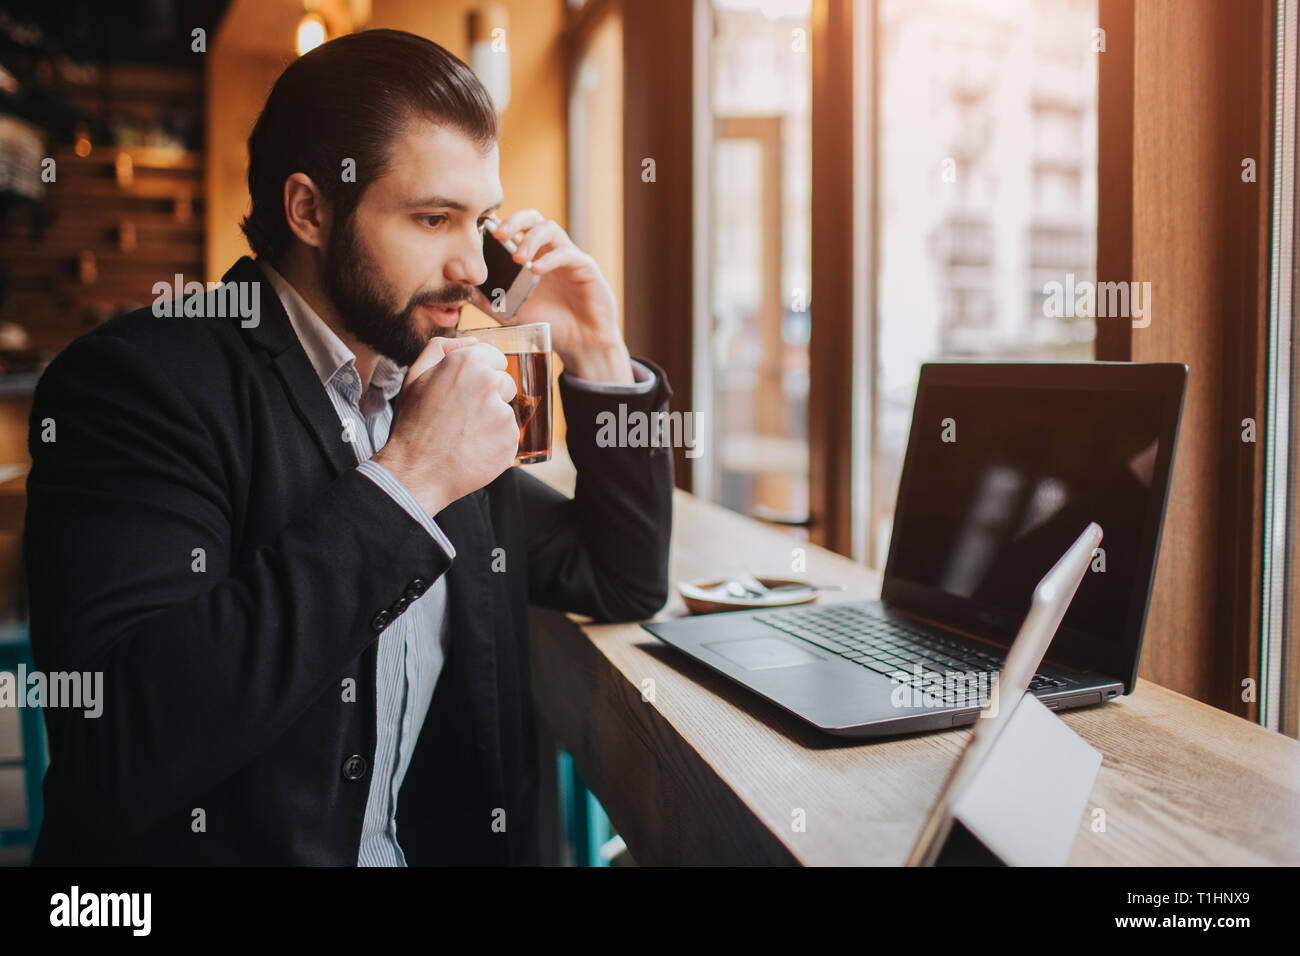 Busy man is in a hurry, he does not have time, he is going to eating and working. Worker eating, drinking coffee, talking on the phone, at the same - Stock Image